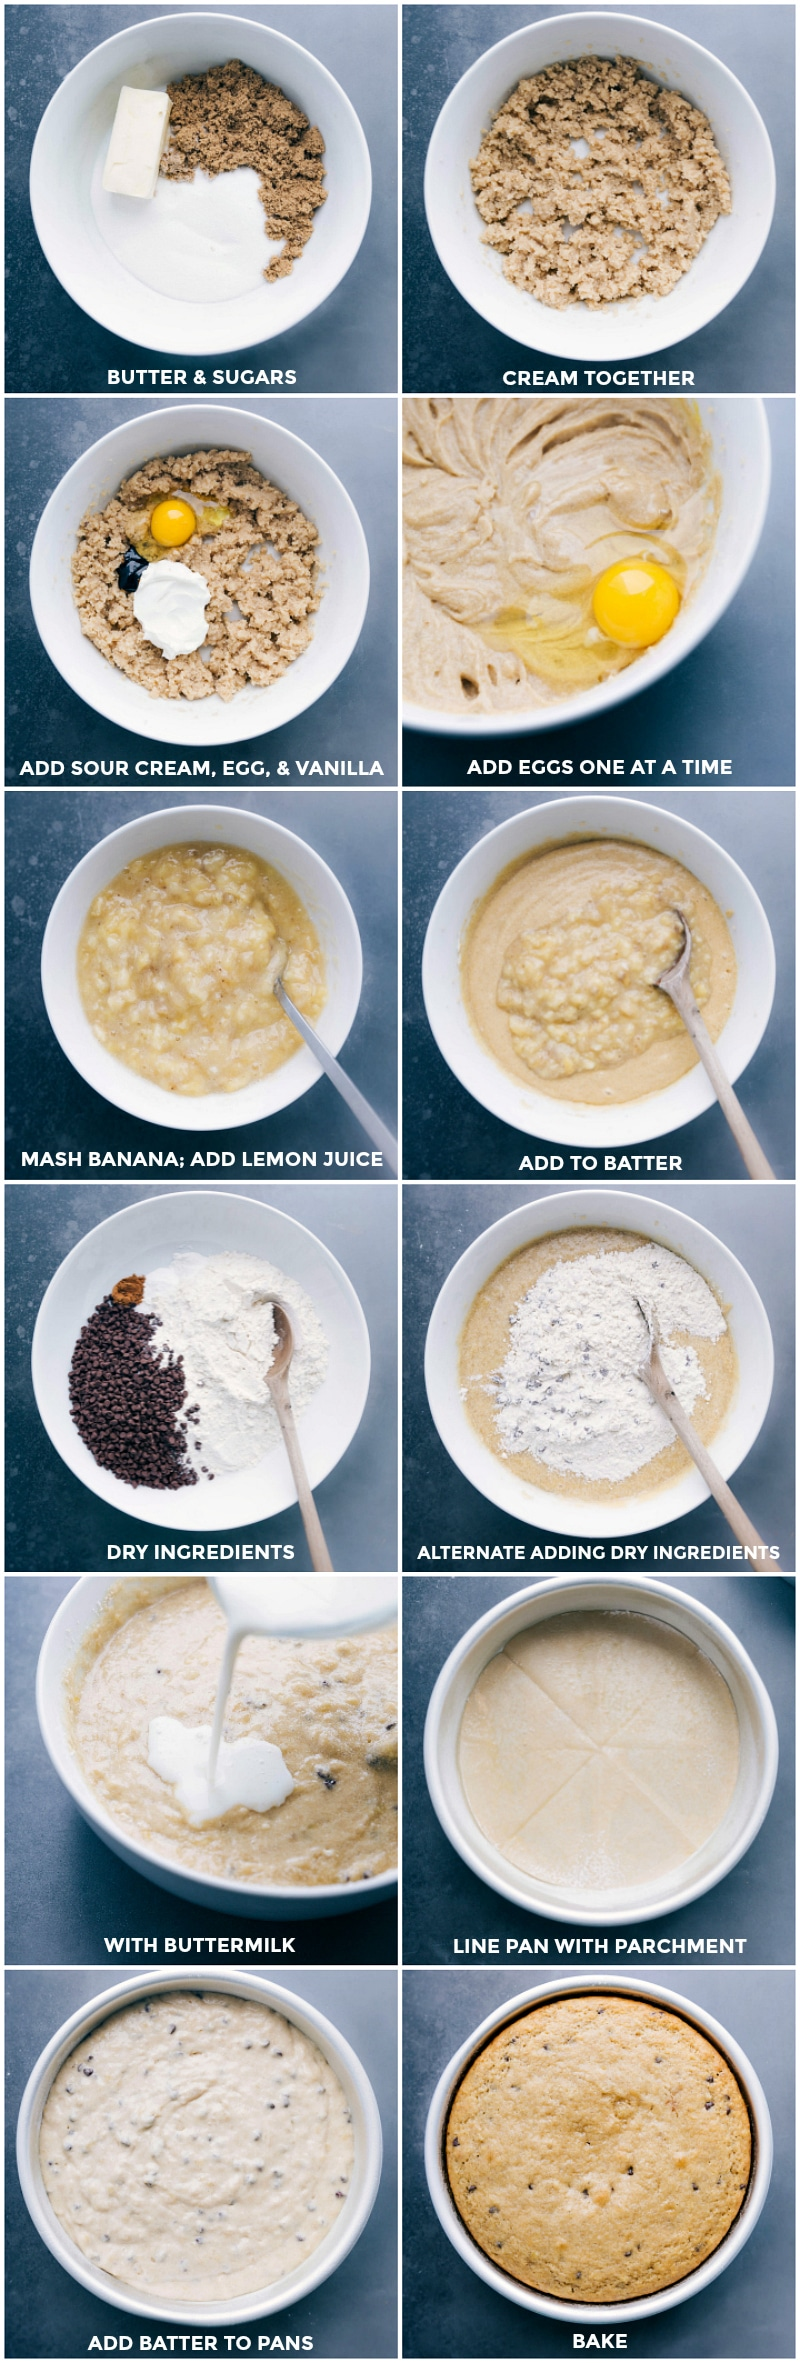 Images of the wet and dry ingredients being mixed together; poured into a prepared cake pan; and being baked.